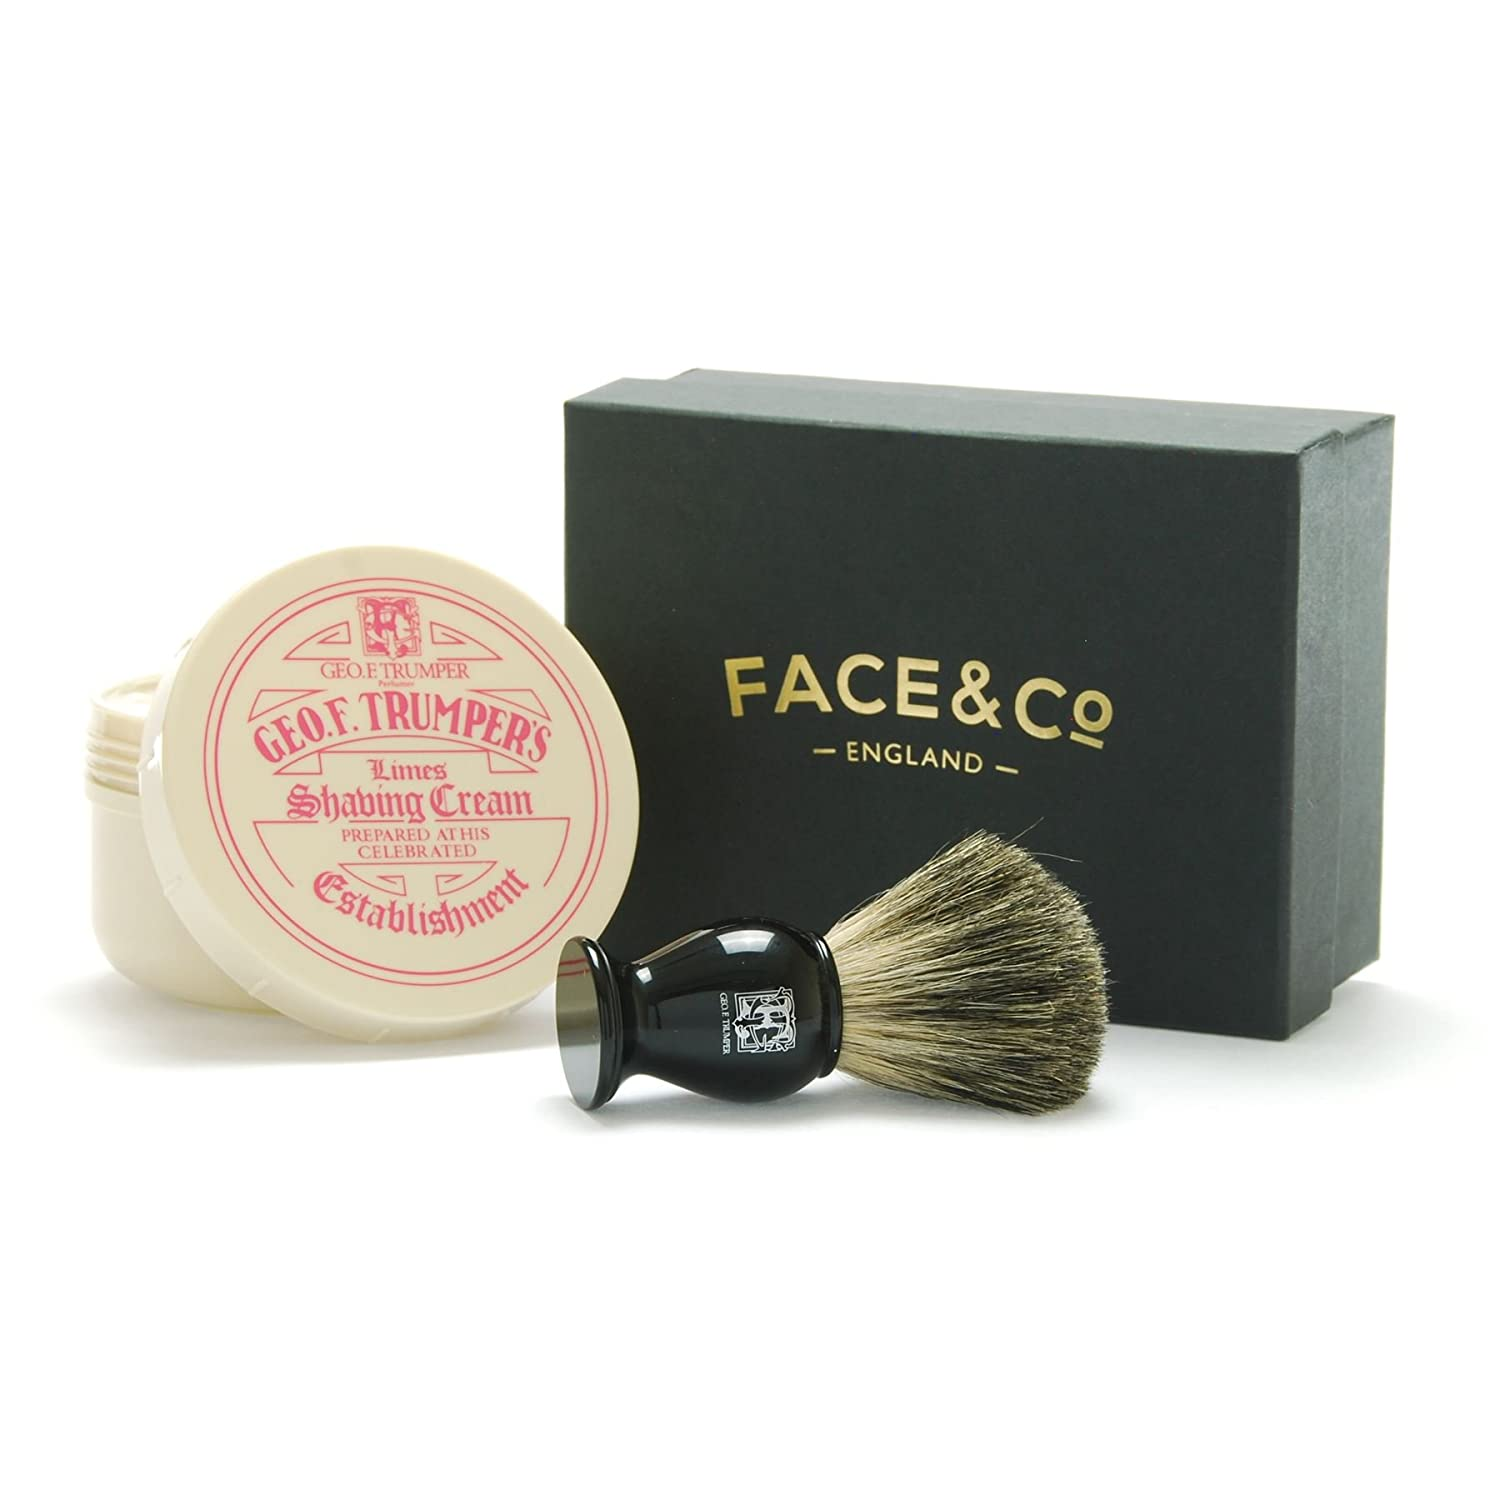 Geo F Trumper Black, Pure Badger Shaving Brush & Limes Shave Cream Gift Set Face & Co